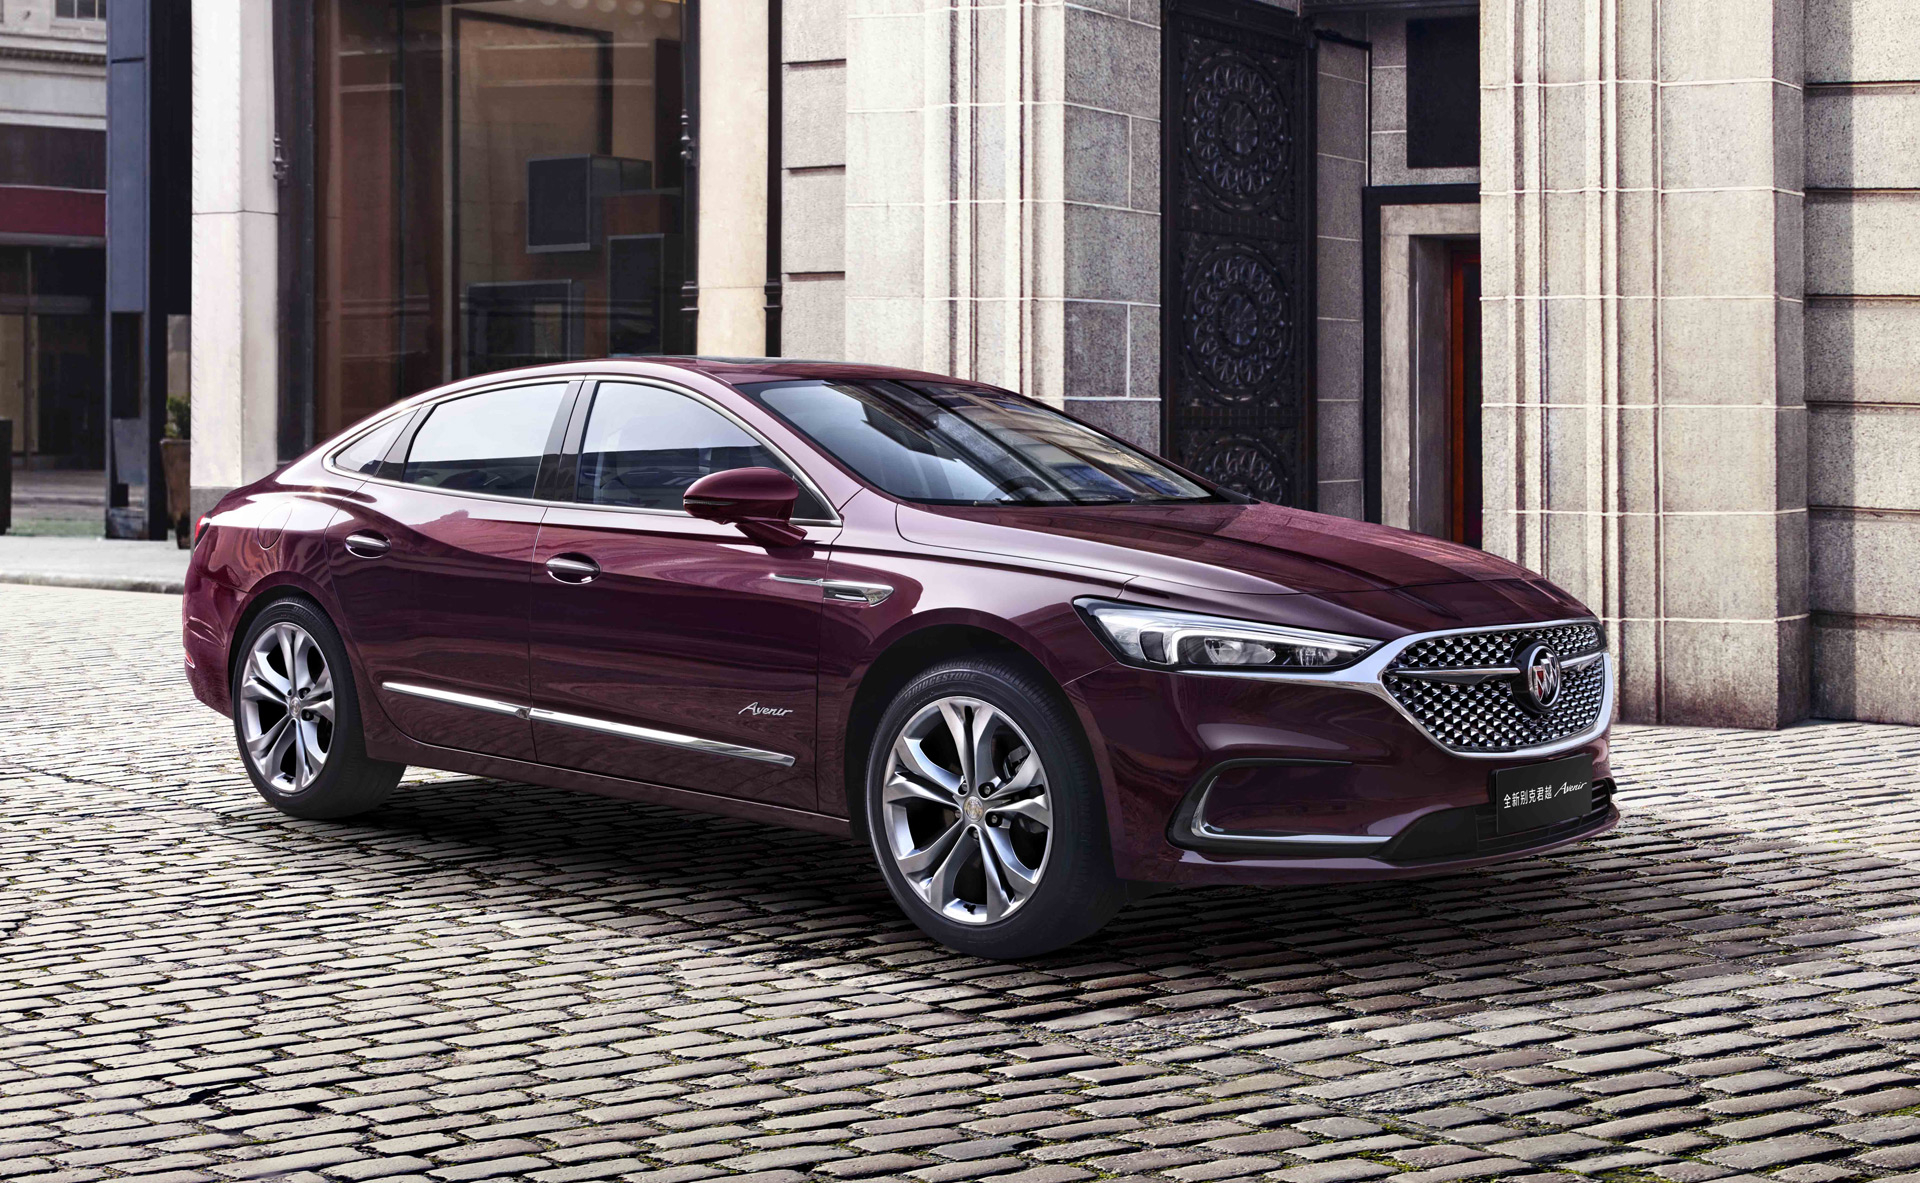 2020 Buick Lacrosse Made Handsome Just As It's Dropped In Us Price Of A New 2021 Buick Lacrosse